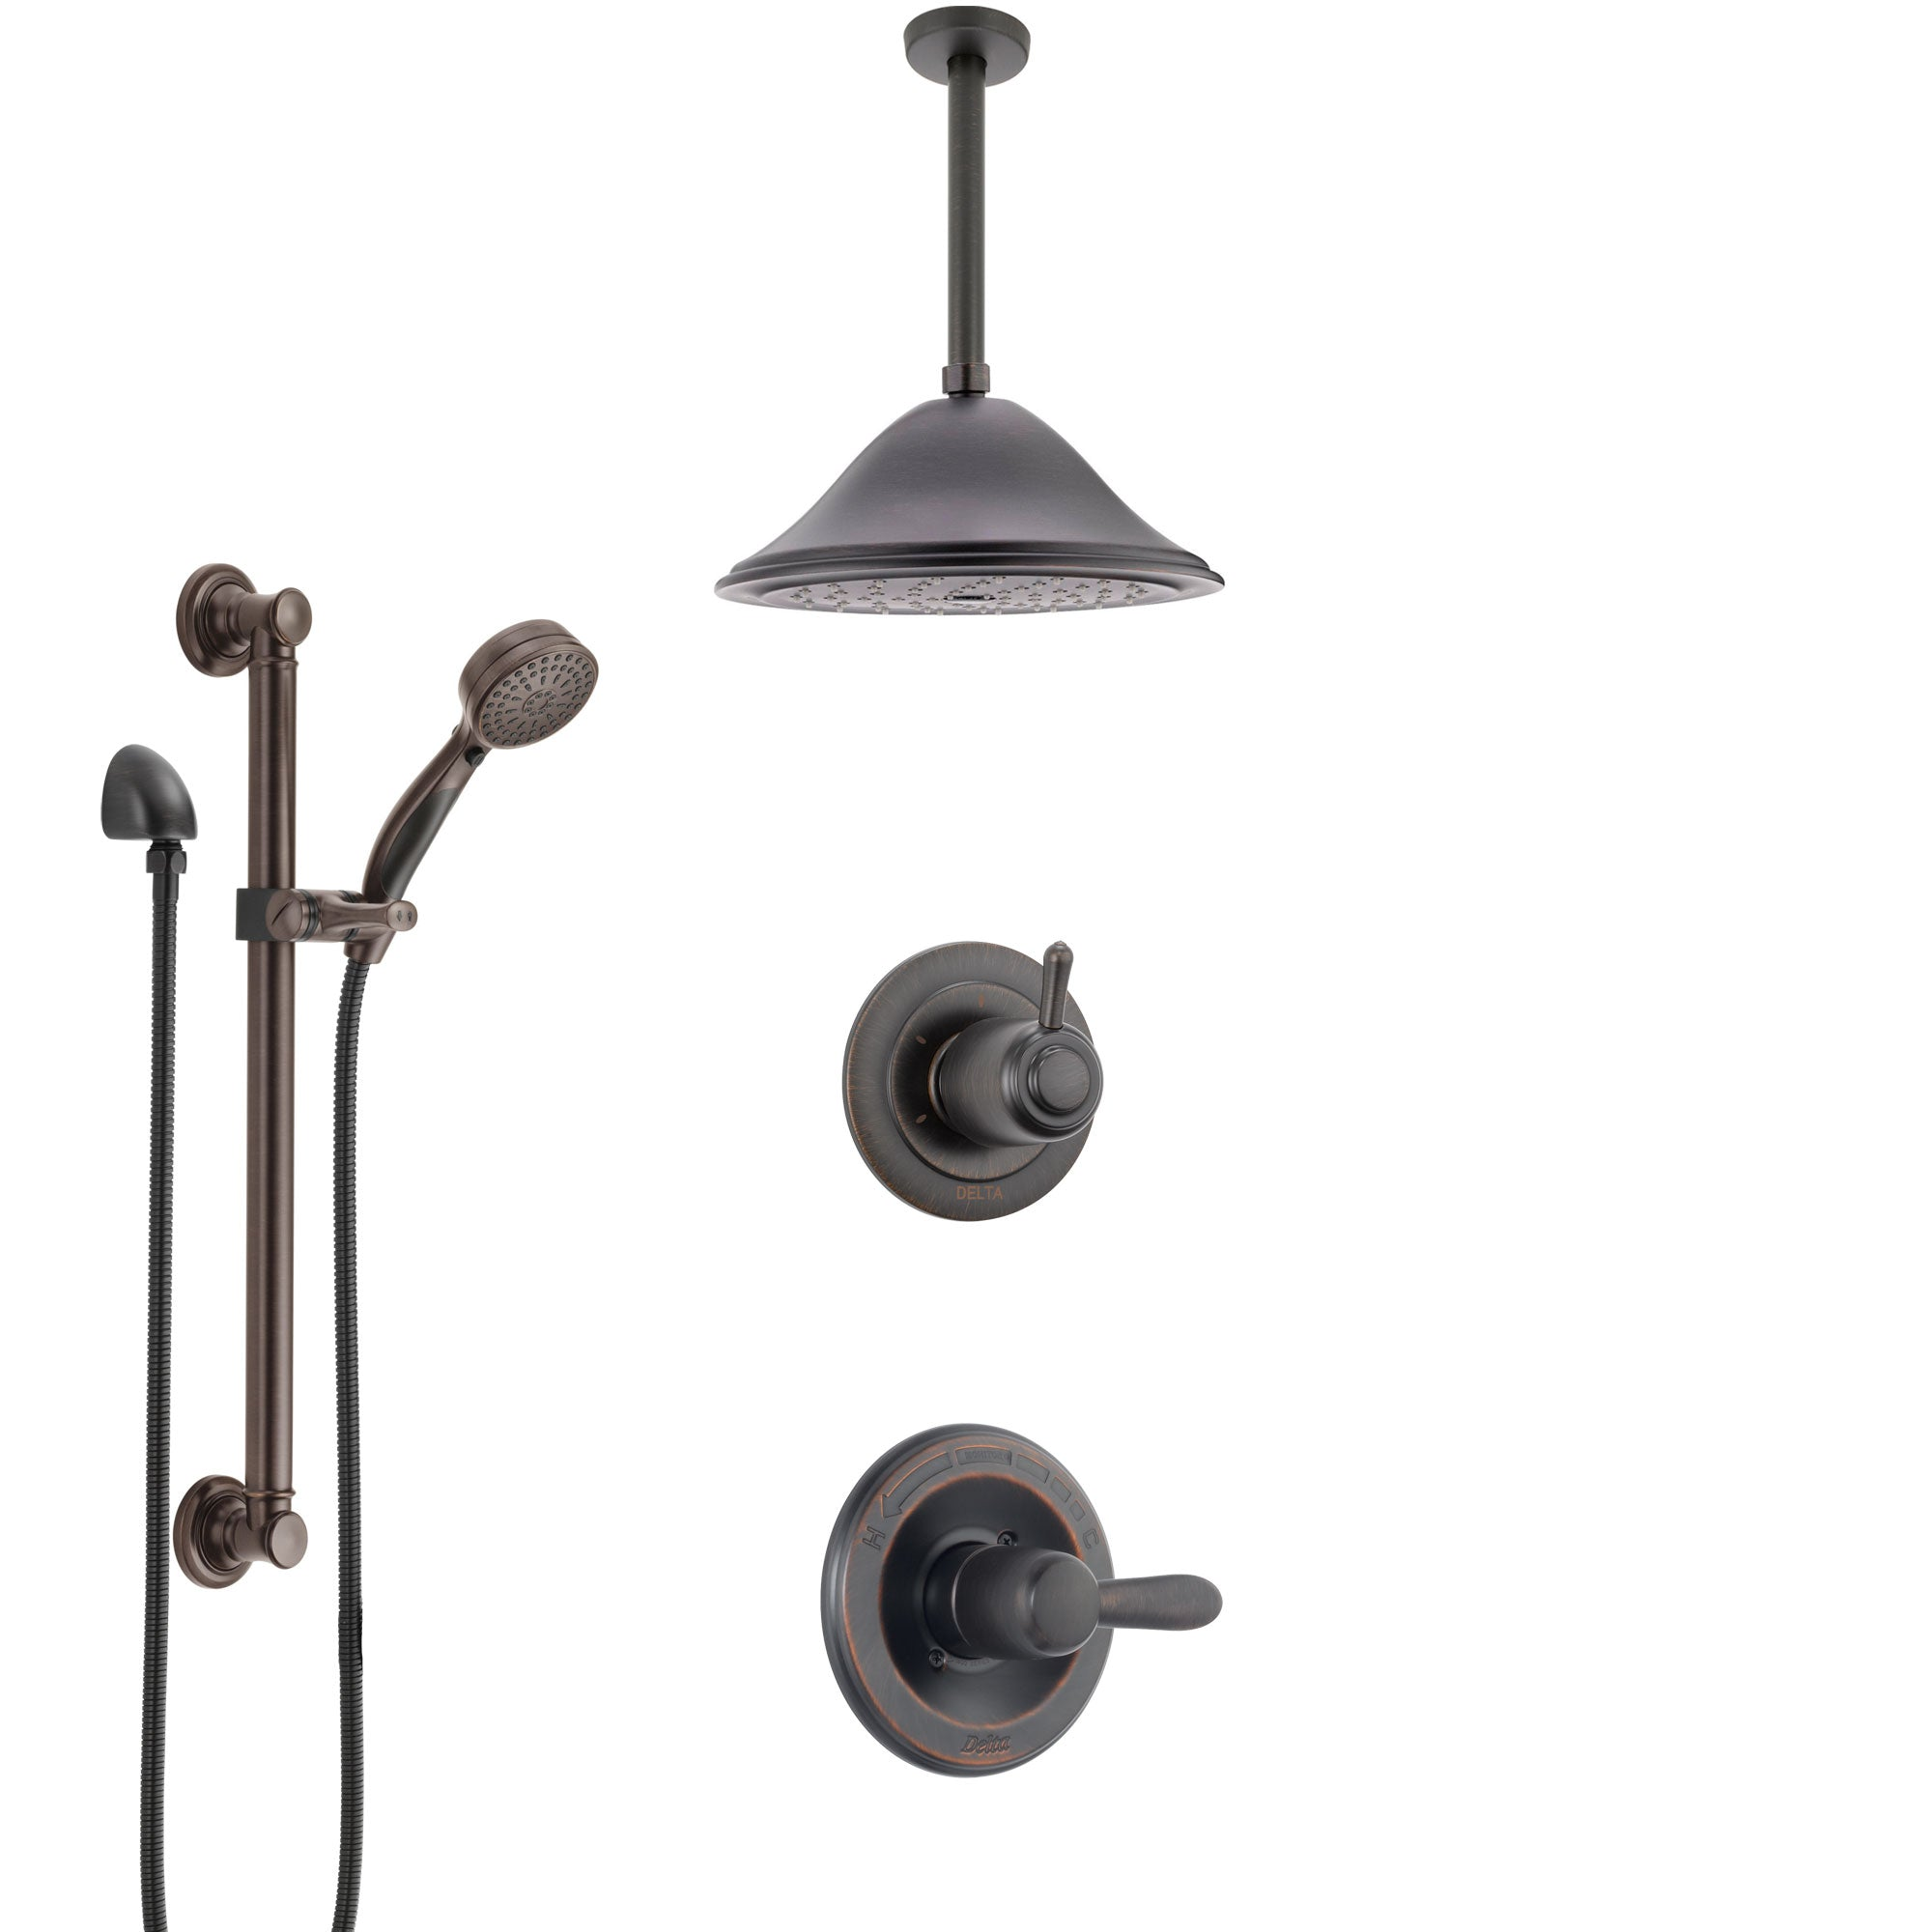 Delta Lahara Venetian Bronze Shower System with Control Handle, 3-Setting Diverter, Ceiling Mount Showerhead, and Hand Shower with Grab Bar SS1438RB8